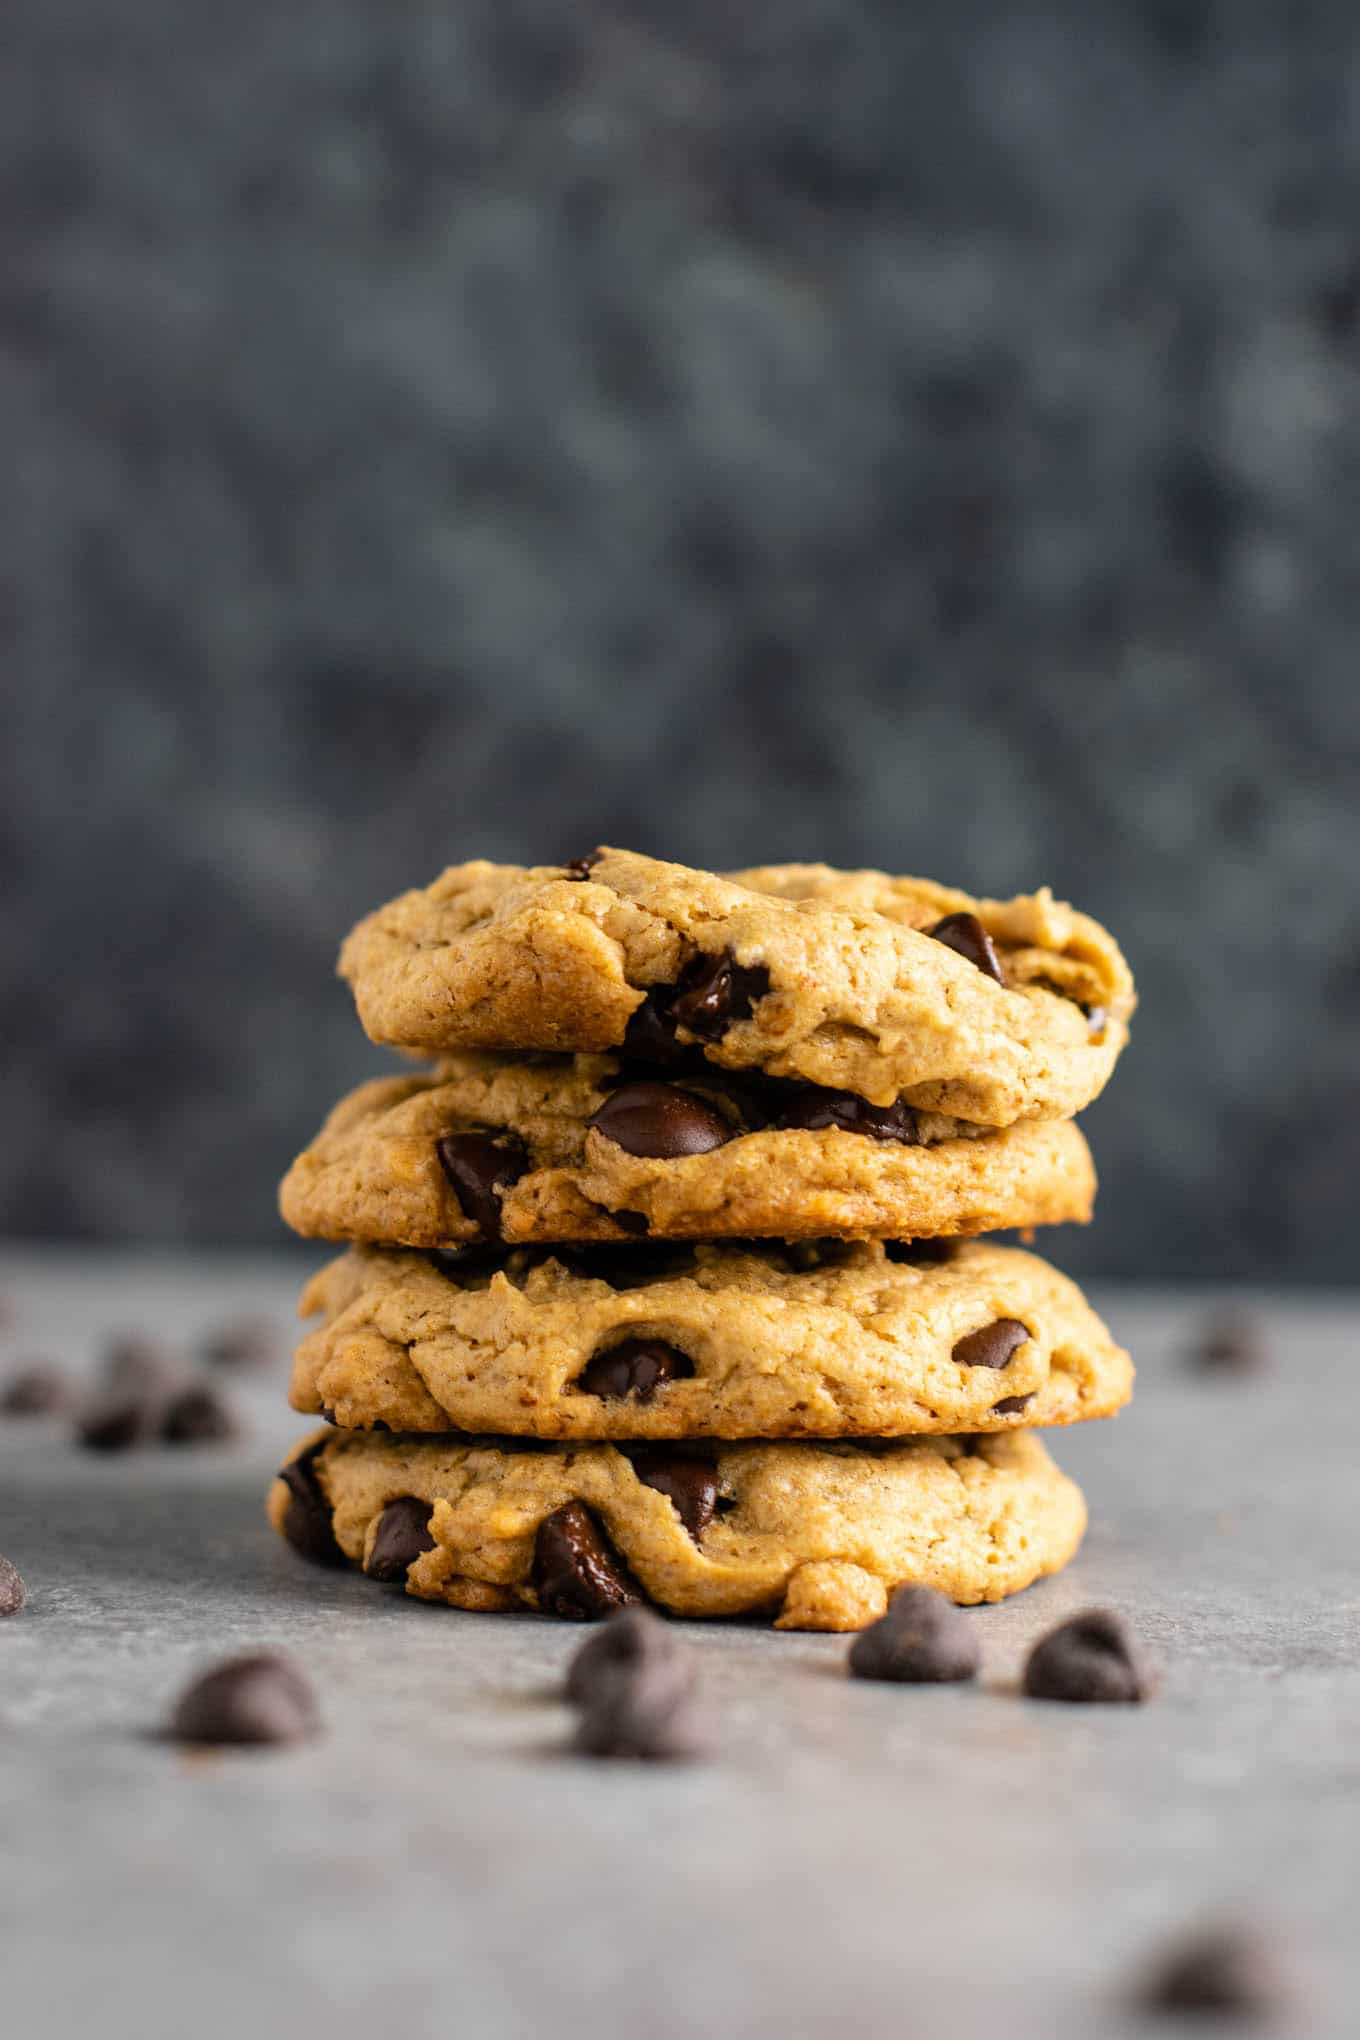 The best vegan chocolate chip cookies recipe - so chewy and rich, you would never guess they don't have any eggs or dairy in them! #vegan #chocolatechipcookies #dessert #dairyfree #eggless #cookies #healthy